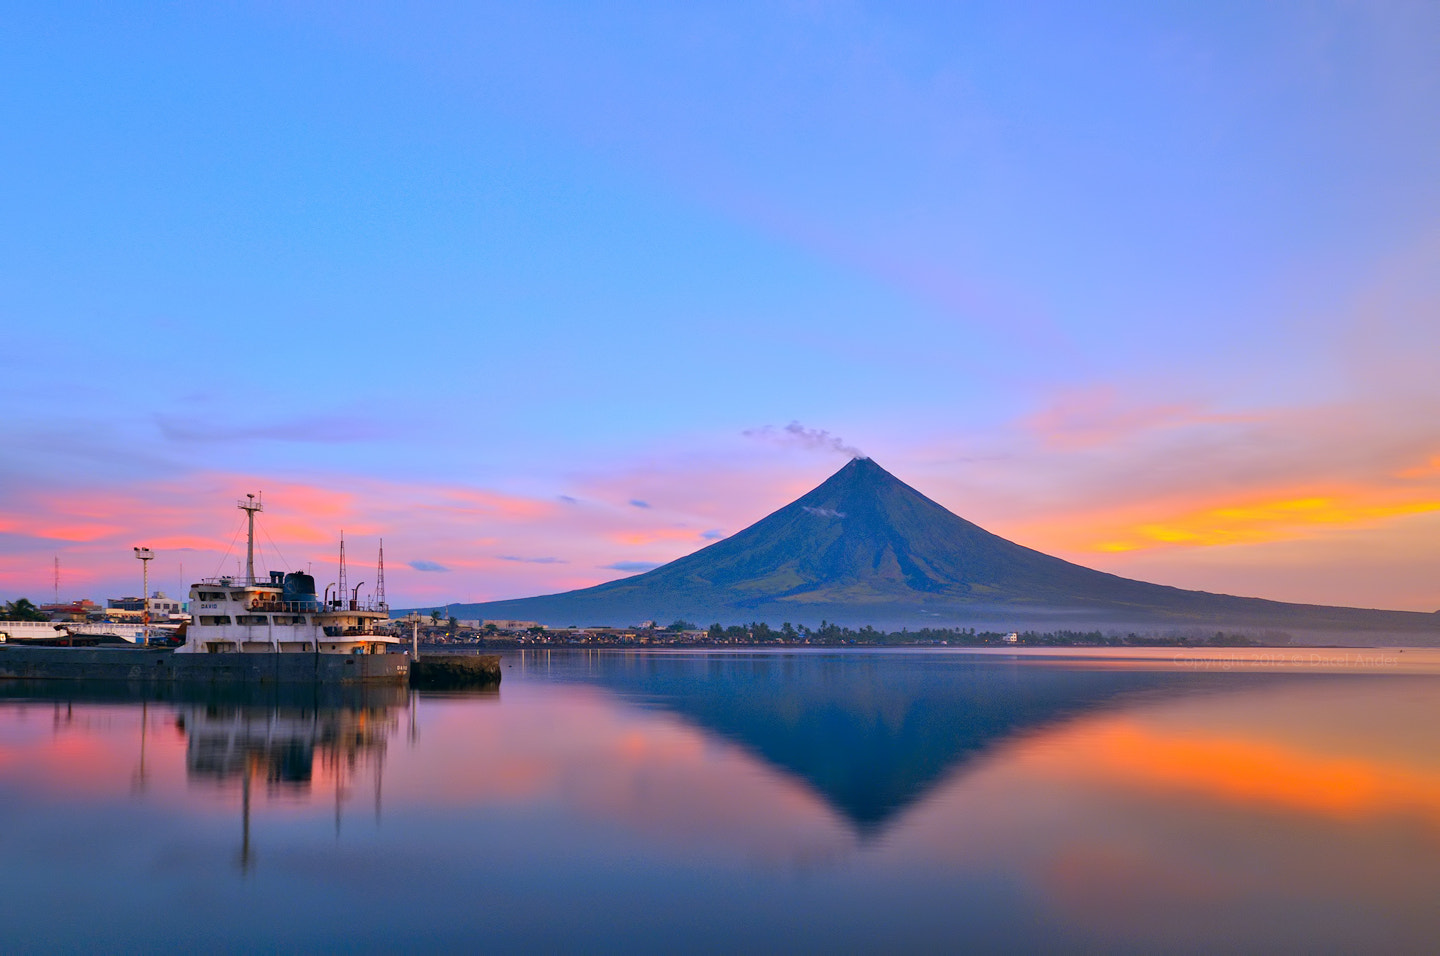 Photograph Morning Colours & Reflection by Dacel Andes on 500px